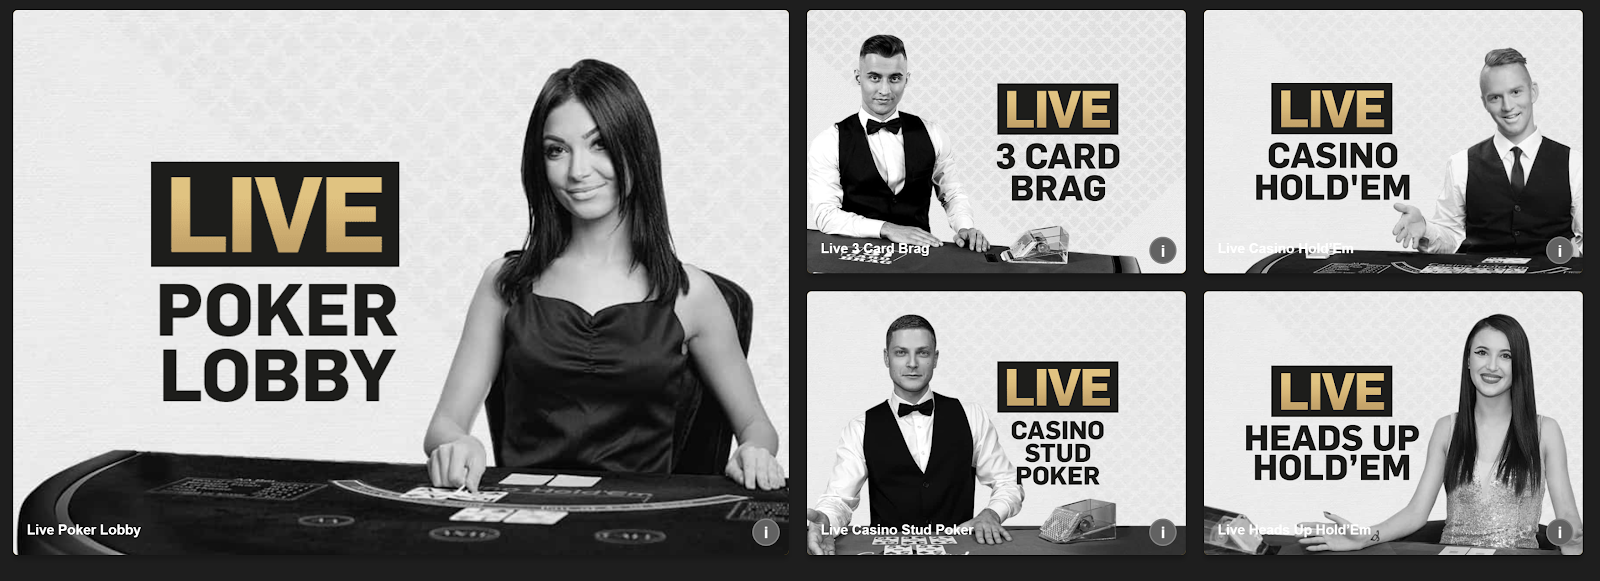 Betfair is an excellent site for live poker games